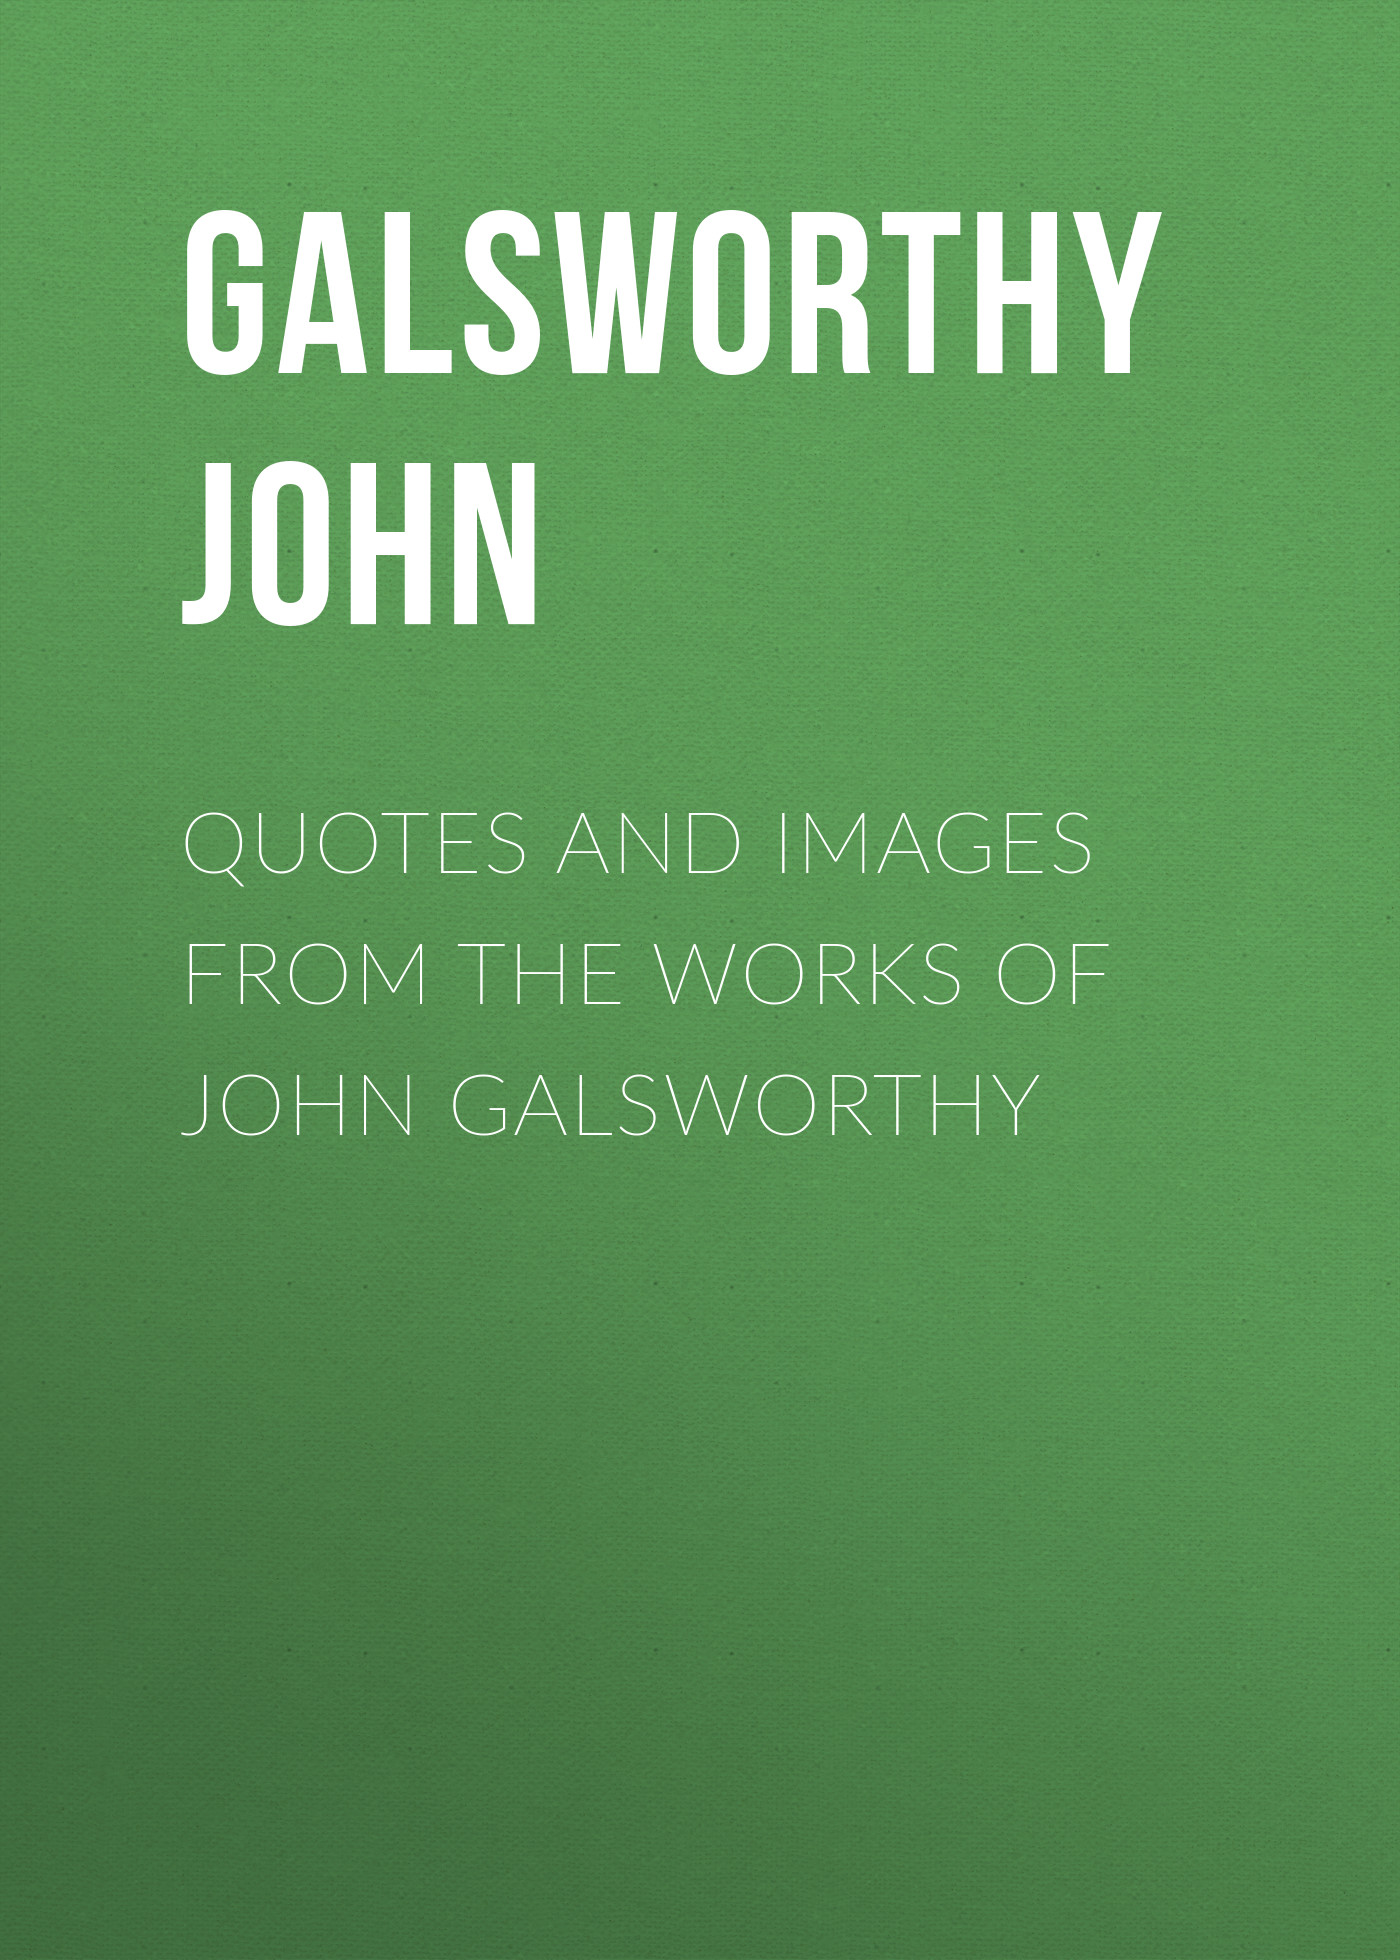 Galsworthy John Quotes and Images From the Works of John Galsworthy john galsworthy the burning spear